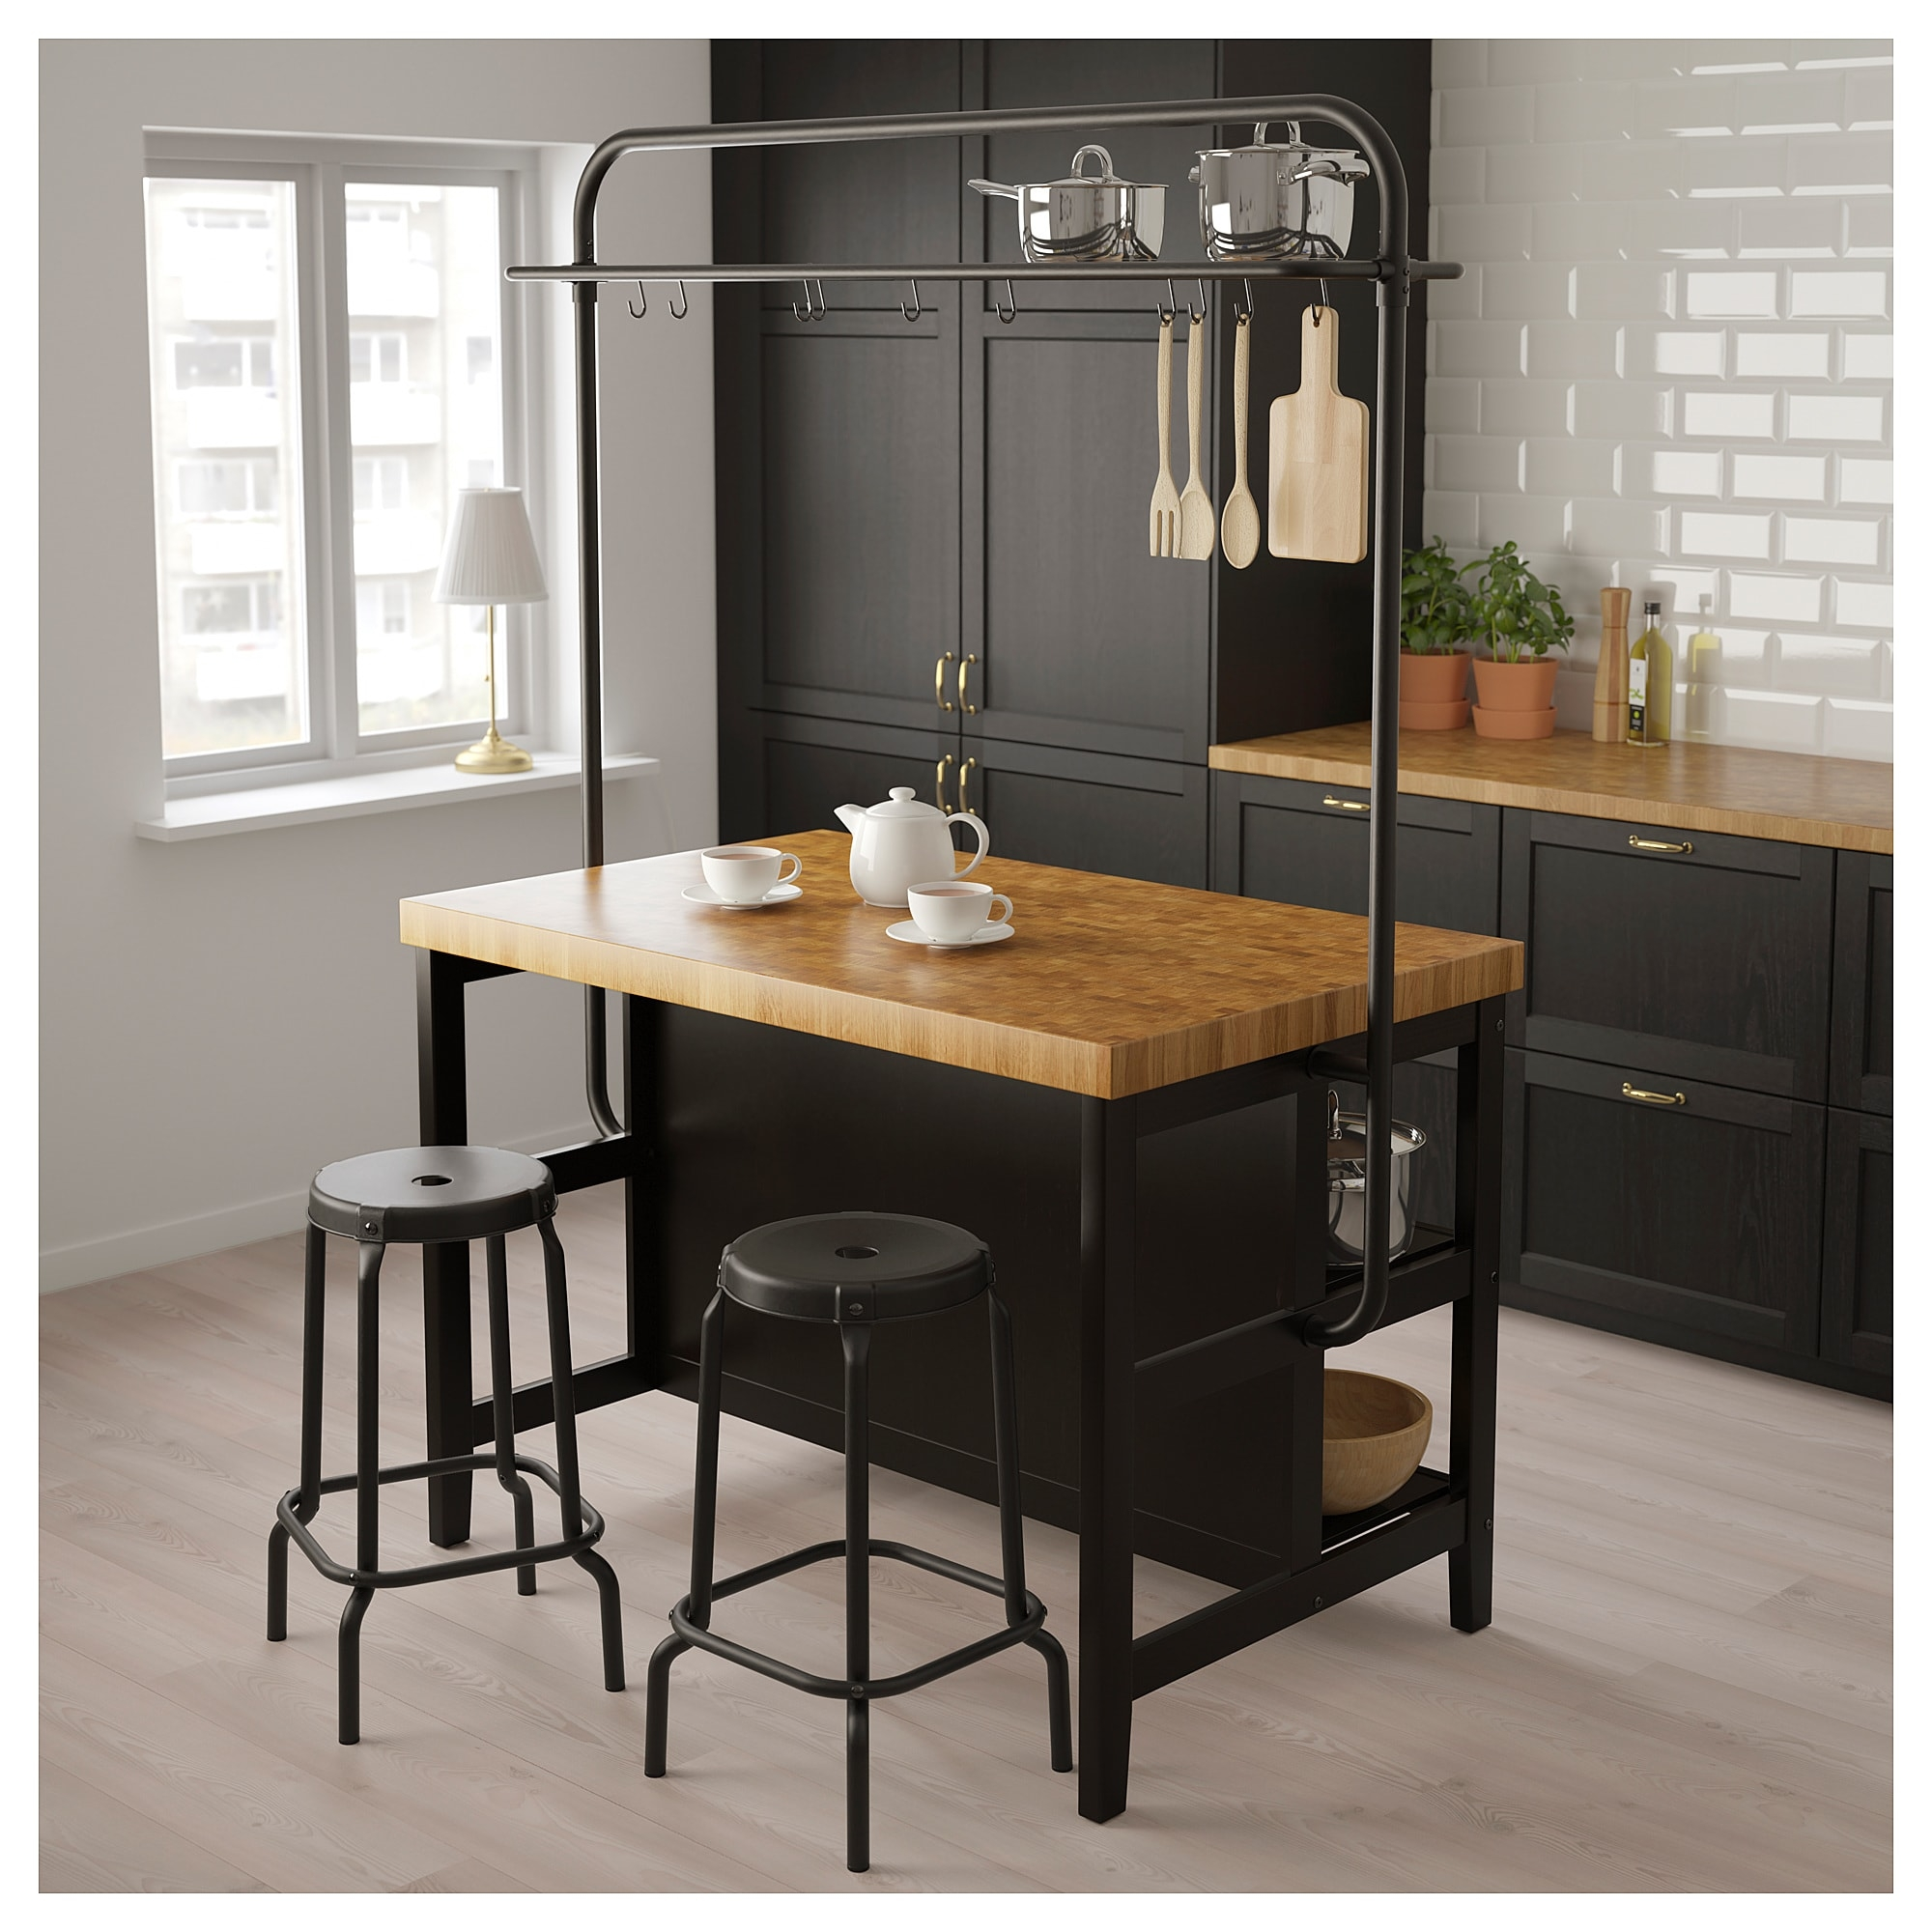 Ikea Kitchen Islands You Ll Love In 2021 Visualhunt